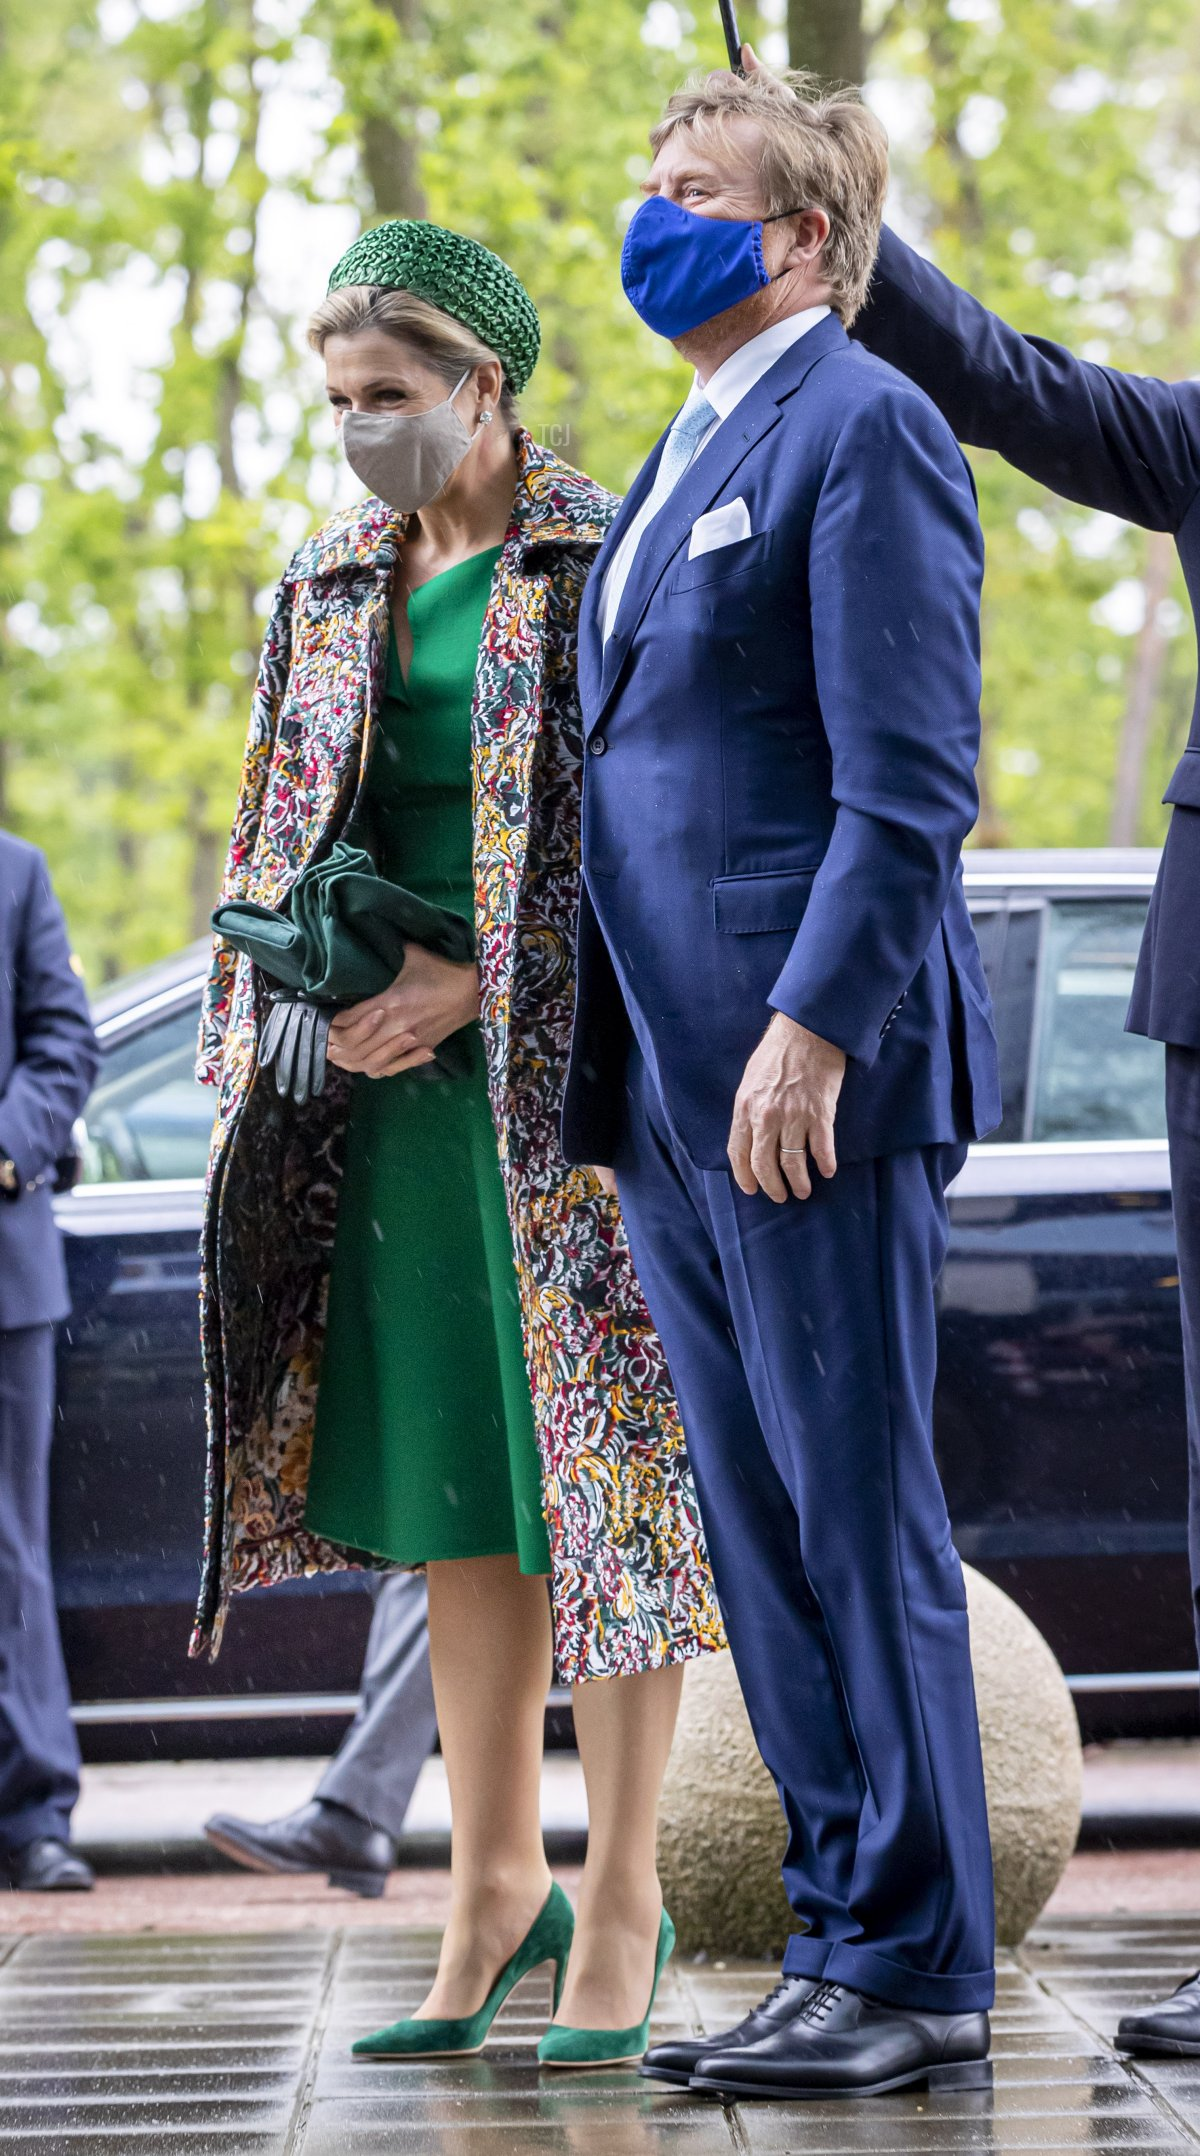 ing Willem-Alexander of The Netherlands and Queen Maxima of The Netherlands visit Brightlands Campus Greenport during their region visit to North-Limburg on May 27, 2021 in Venlo, Netherlands